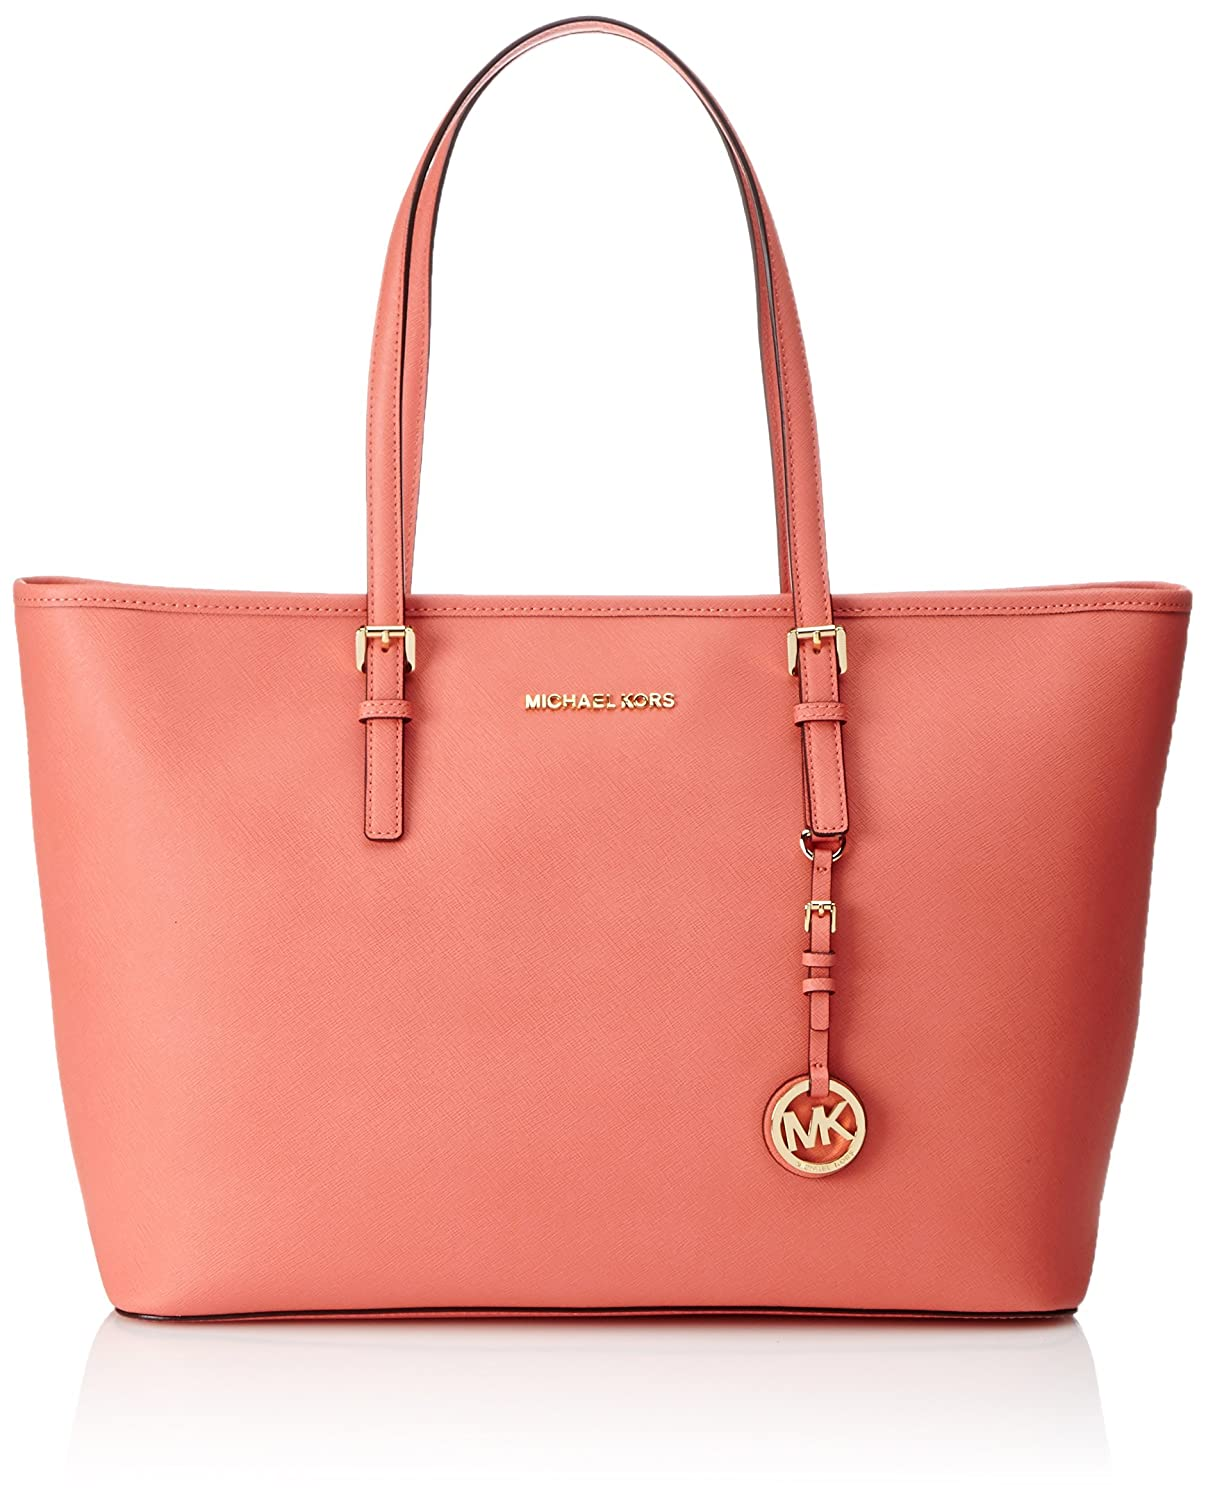 Michael Kors Jet Set Travel, Borsa Tote Donna